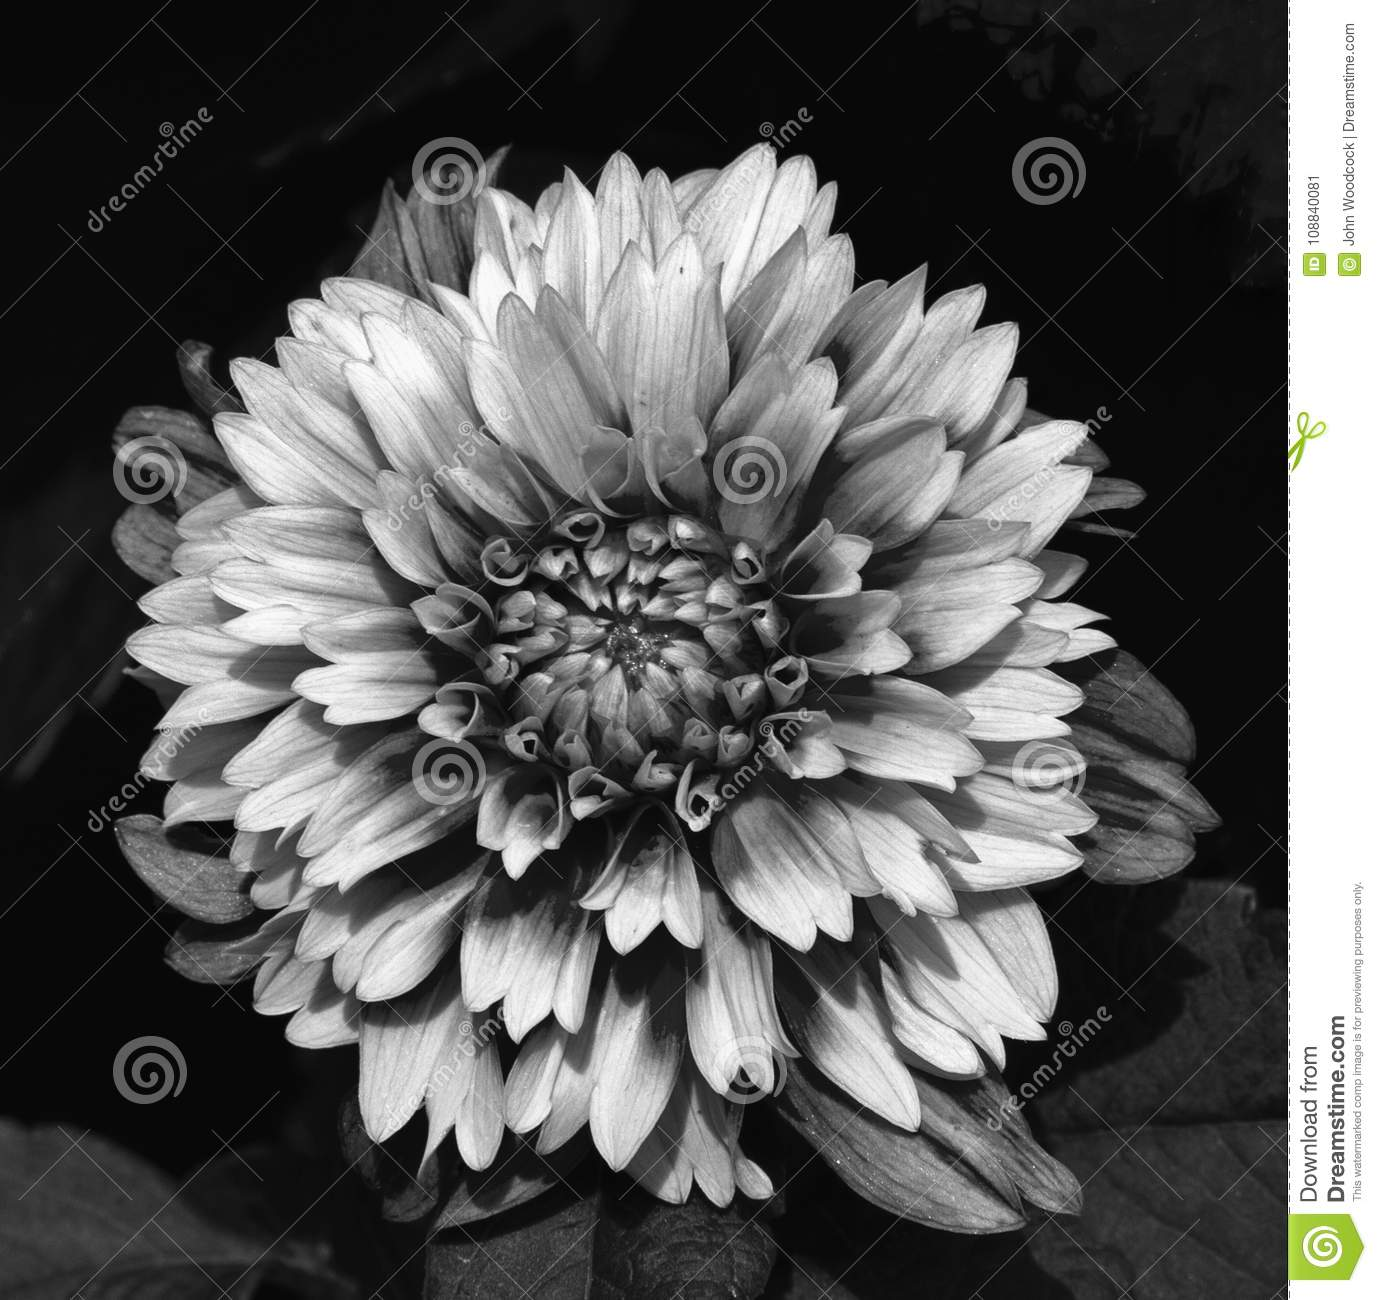 With converting images to black and white this dahlia had just the right amount of color to convert converted using photoshop cs5 shot with canon 7d